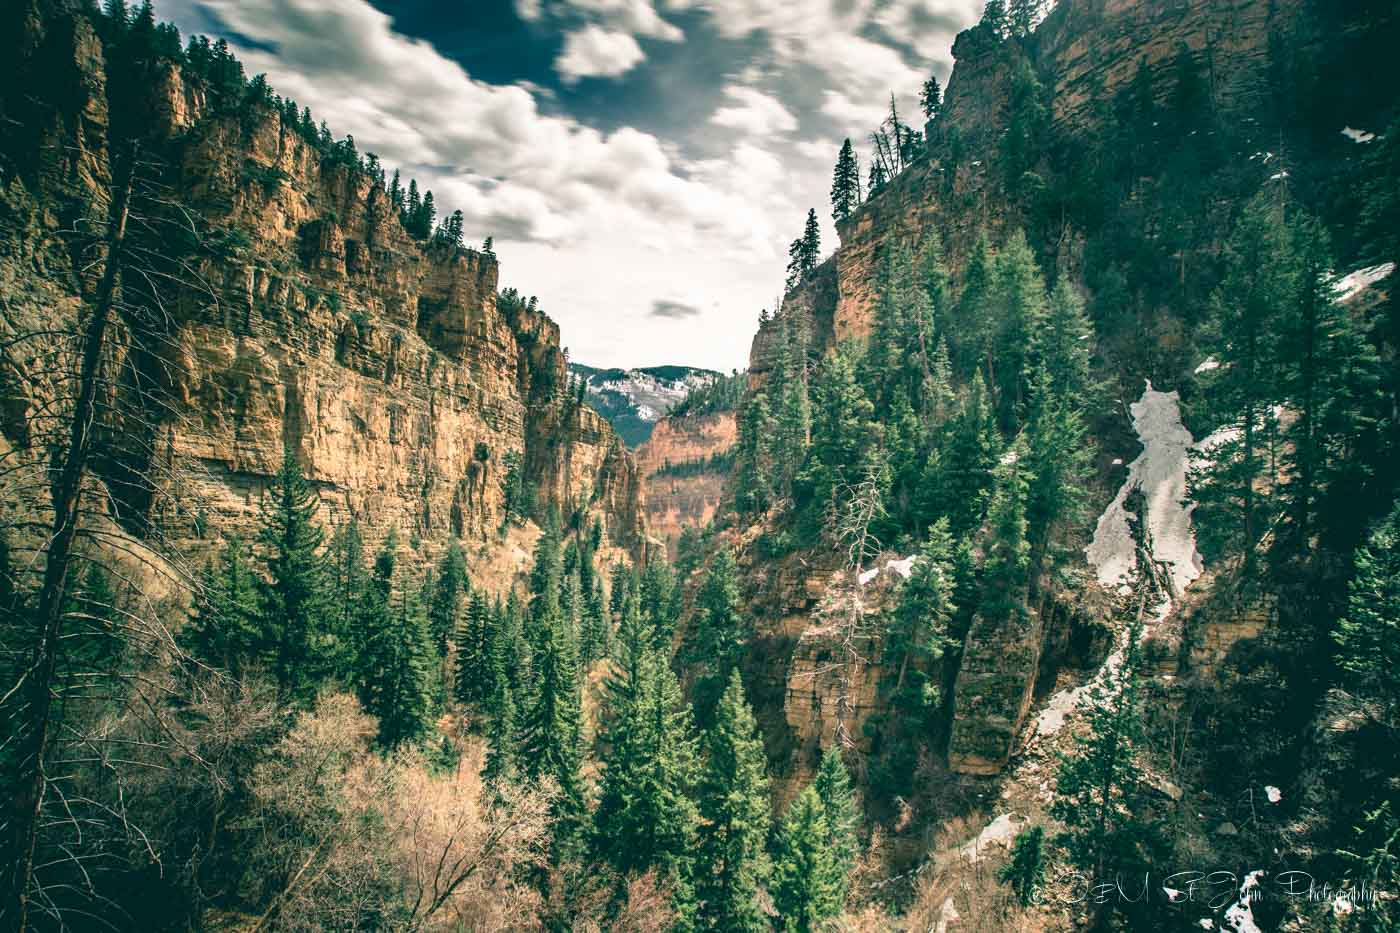 Pine trees in a canyon on the Million Dollar Highway in Colorado